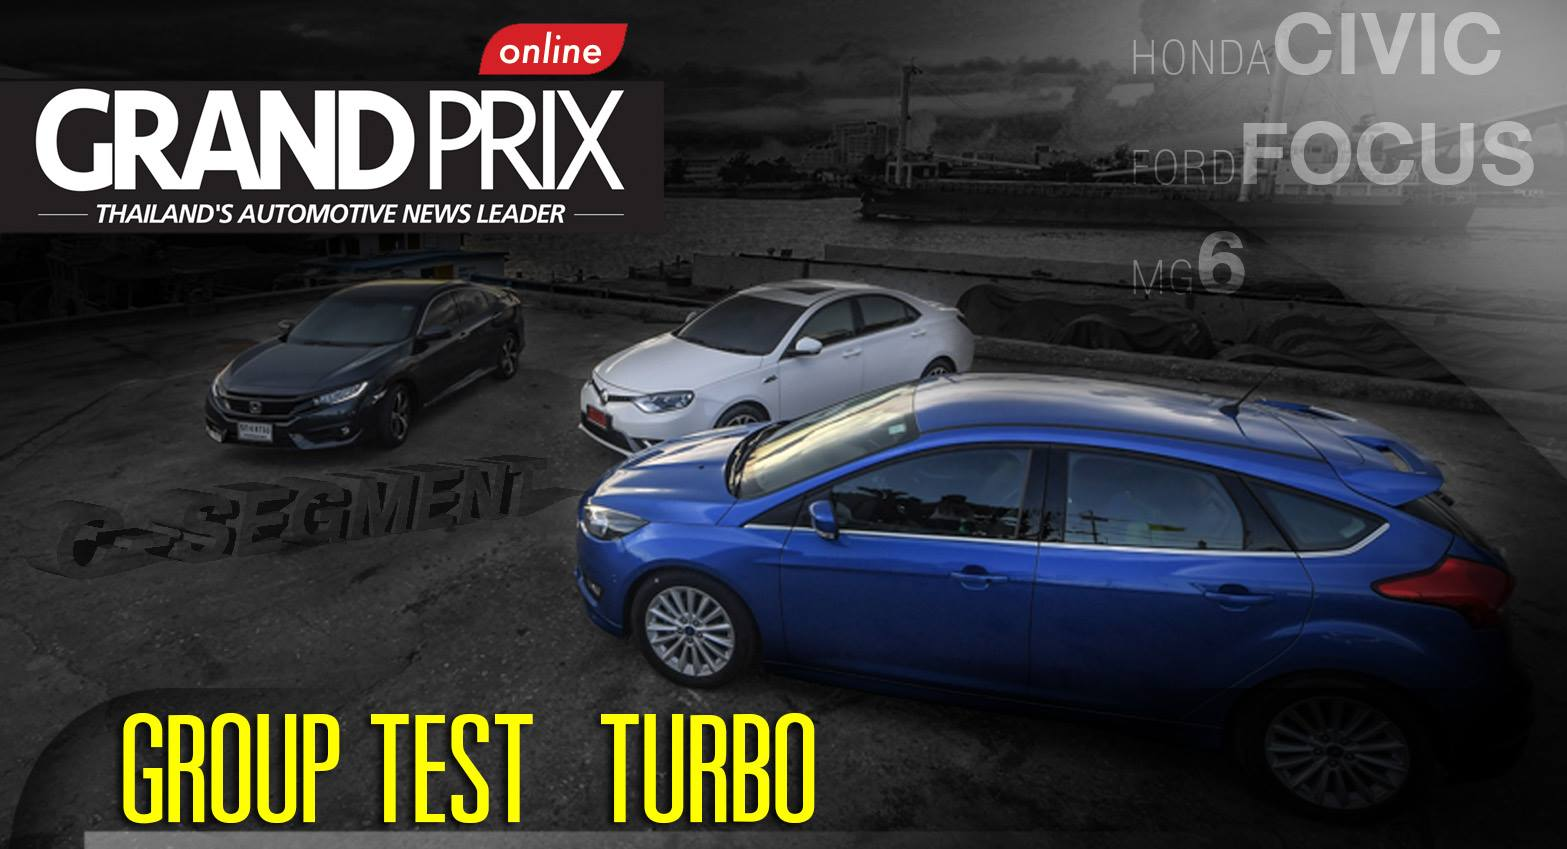 GROUP TEST : HONDA Civic/FORD Focus/MG6